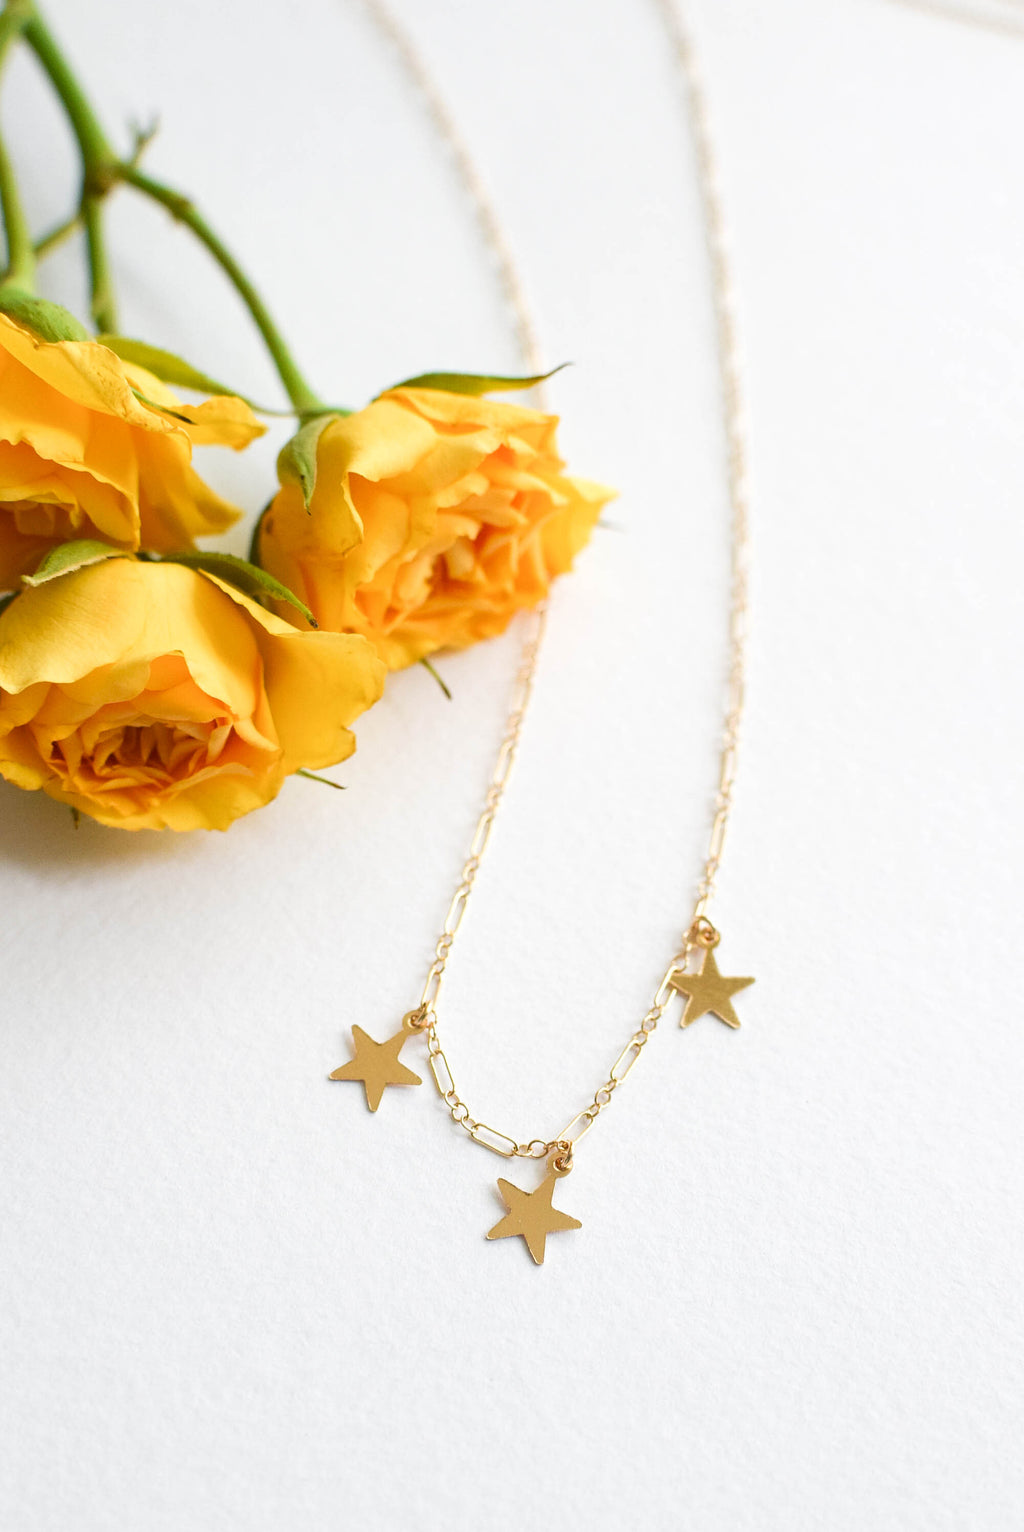 3 Wishes Star Necklace - Gold Filled